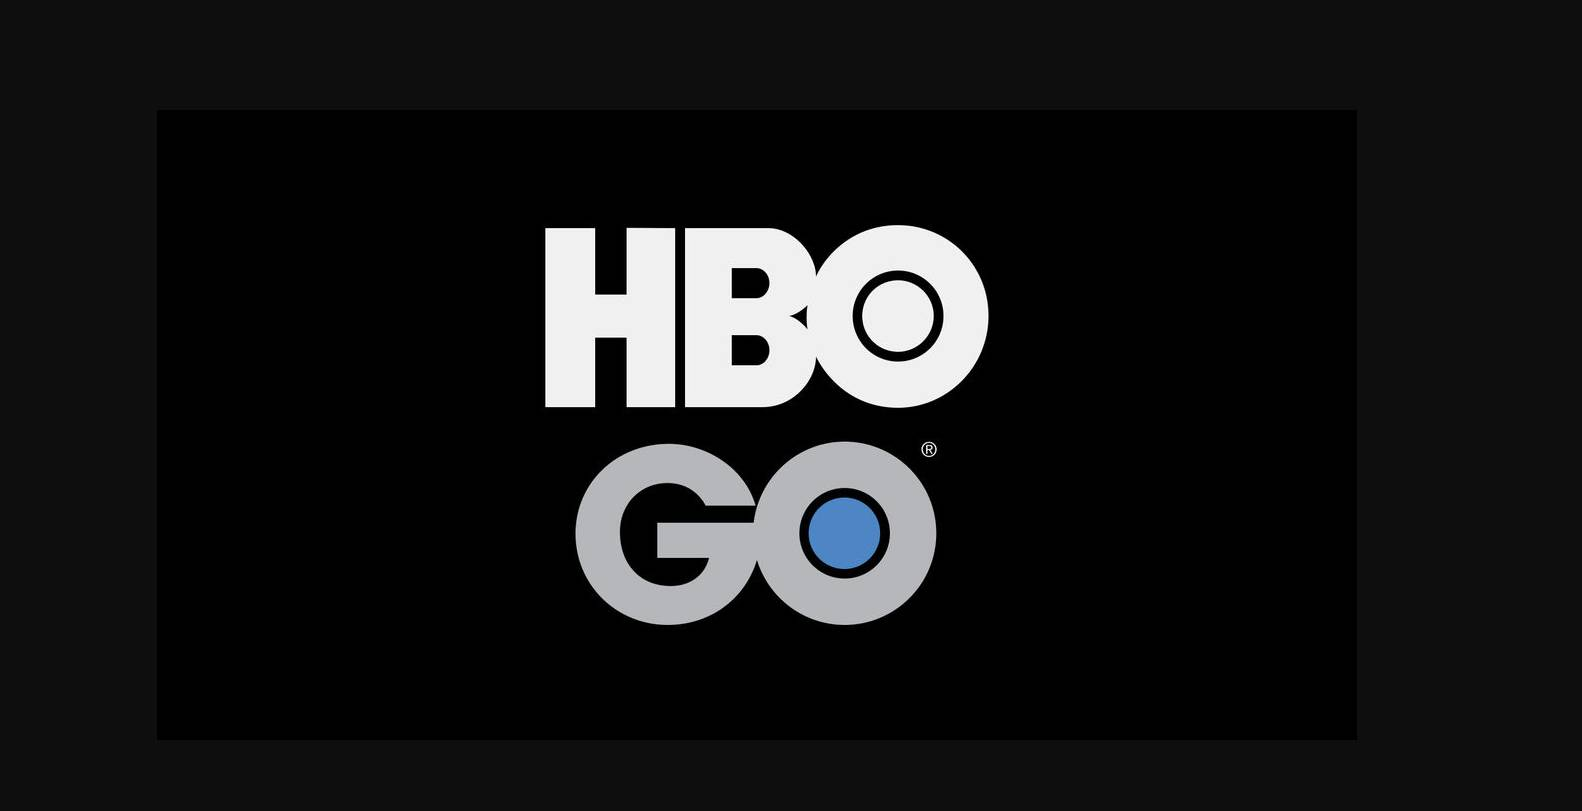 How to Install Fire Stick HBO Go App + Amazon App Store Link